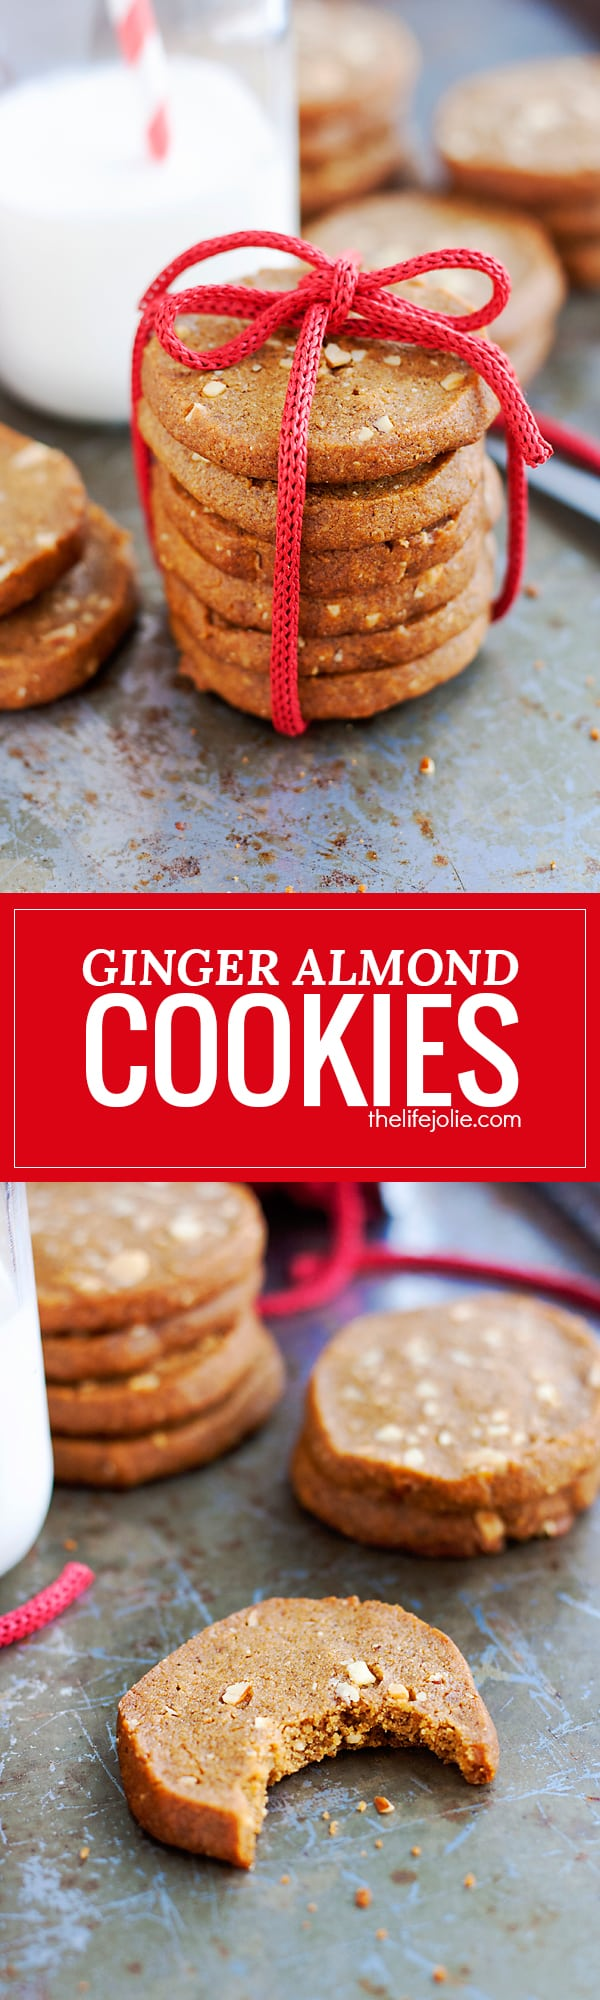 These Ginger Almond Cookies are such easy Christmas cookies to make! This crispy cookie is the best slice-and-bake option if you're looking for a spicy cookie that is that isn't overly sweet.